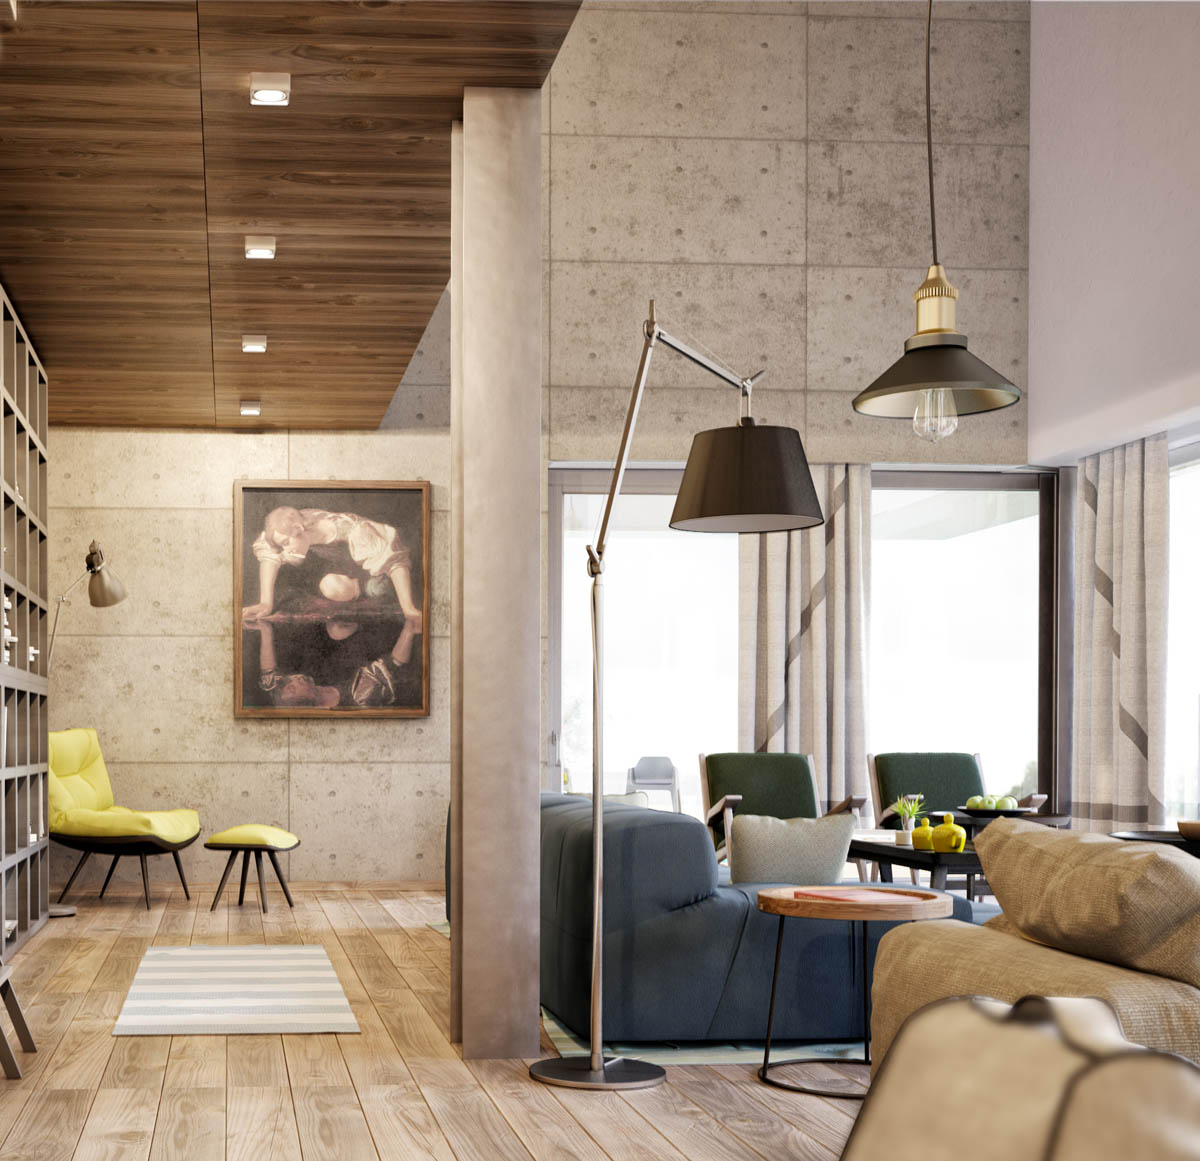 Comfortable Reading Chairs - 3 apartments with industrial inspired concrete wall panels